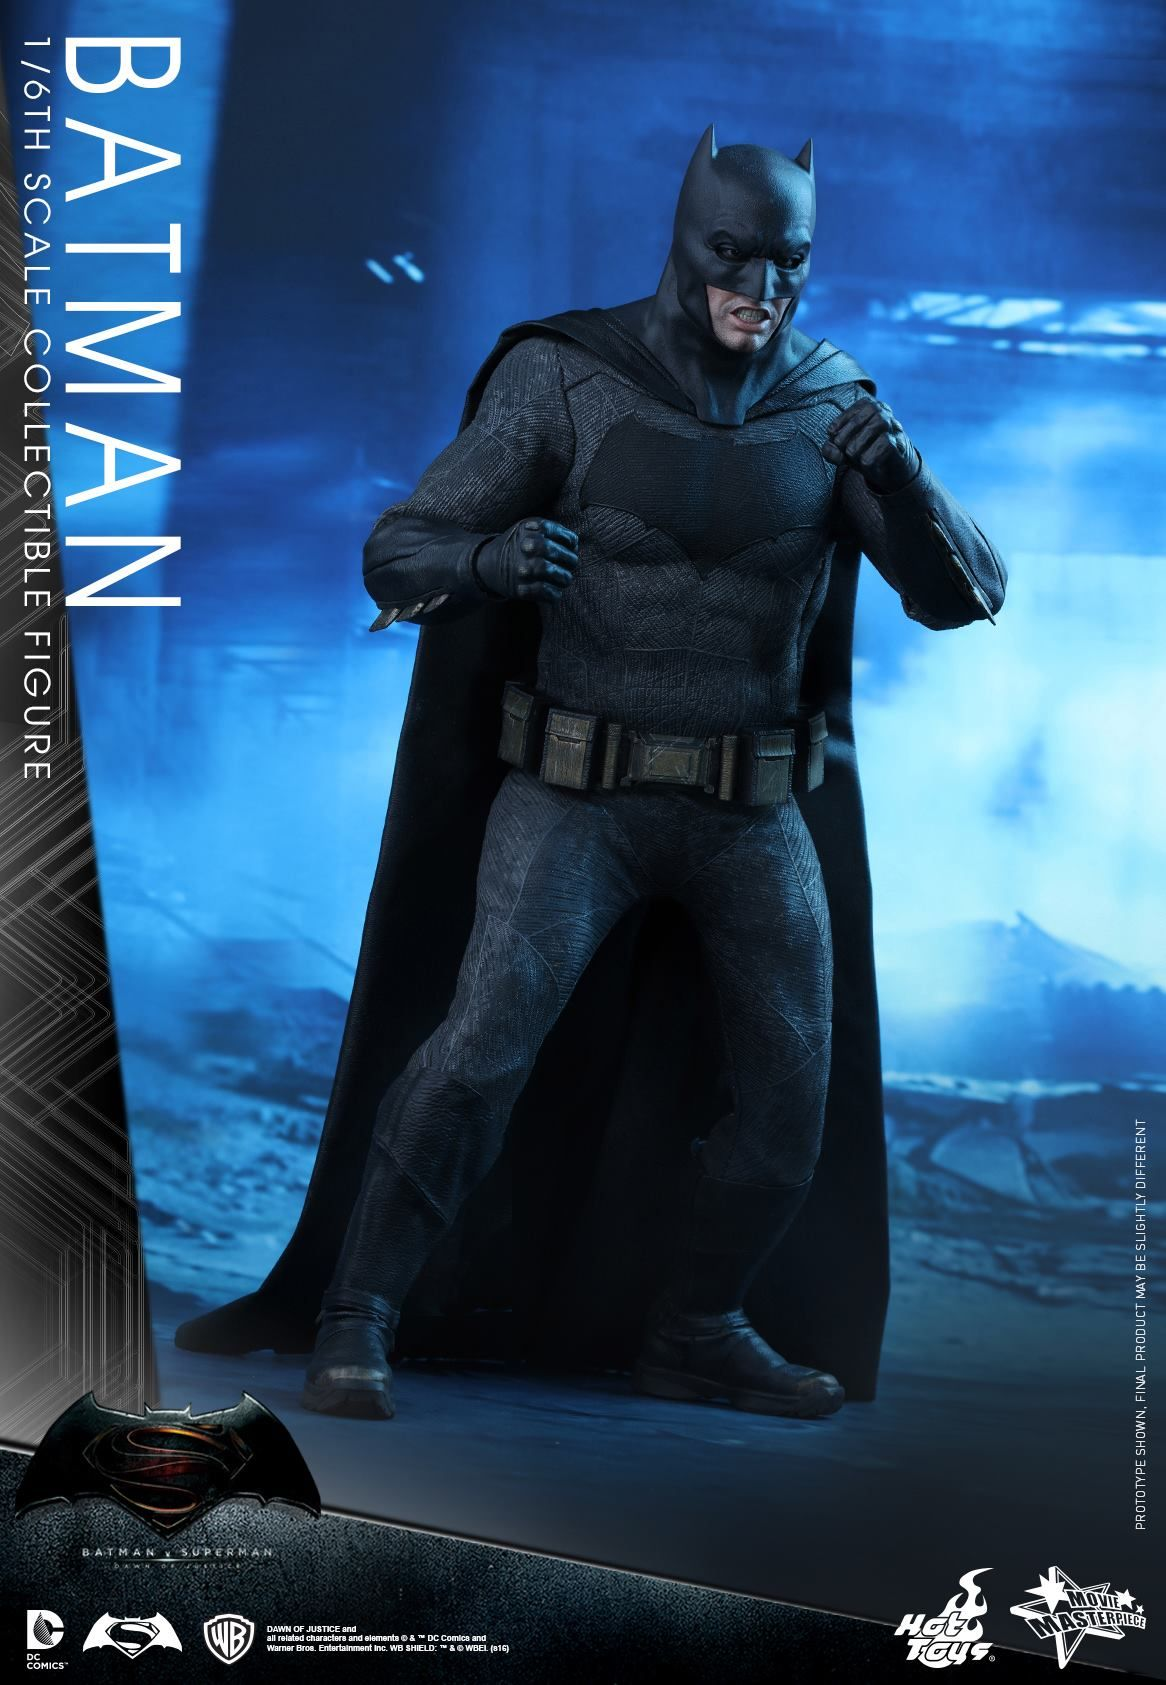 New BATMAN V SUPERMAN Hot Toys Showcase Titular Characters And New - Brand new batmobile revealed awesome